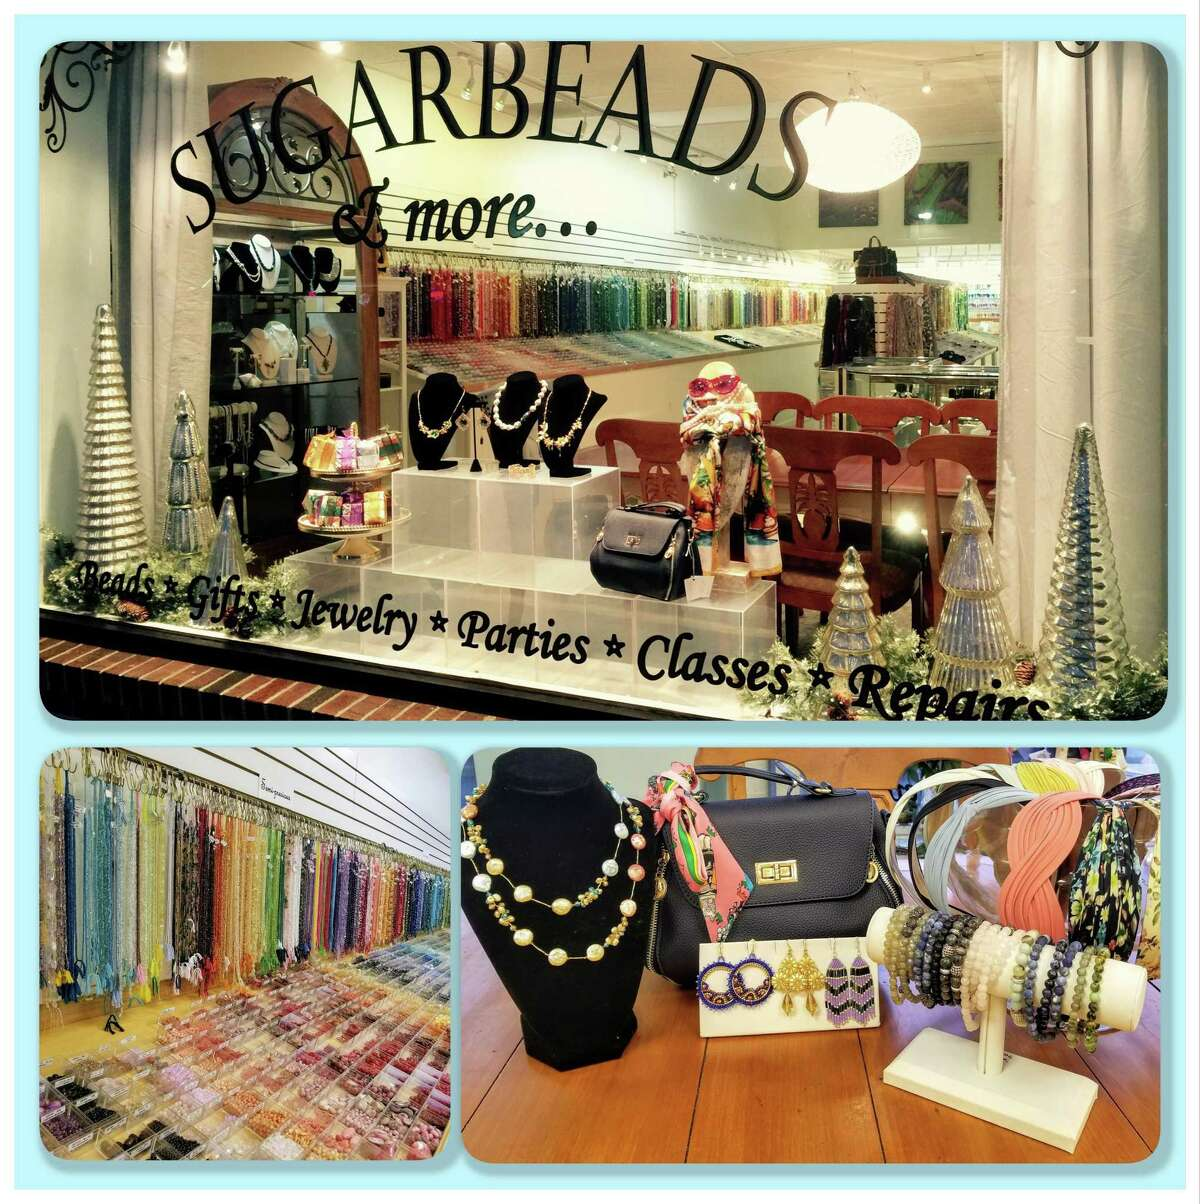 Sugarbeads is relocating from Copps Hill Common to Main Street. The store will also be opening under a new banner, Zoe & Co, when construction on Main Street storefront is complete.